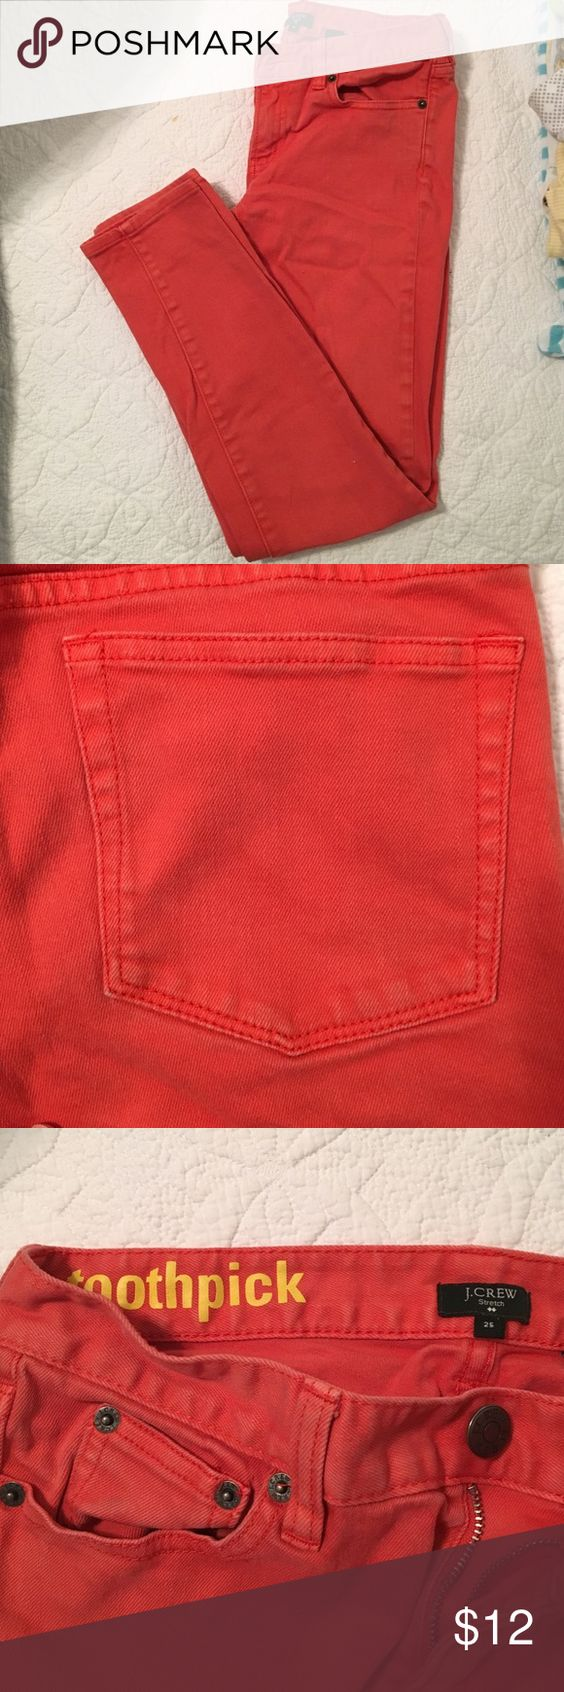 Coral J. Crew stretch jeans Used. Great color for fall. Skinny leg that hits at ankle. Size 25 J. Crew Jeans Ankle & Cropped